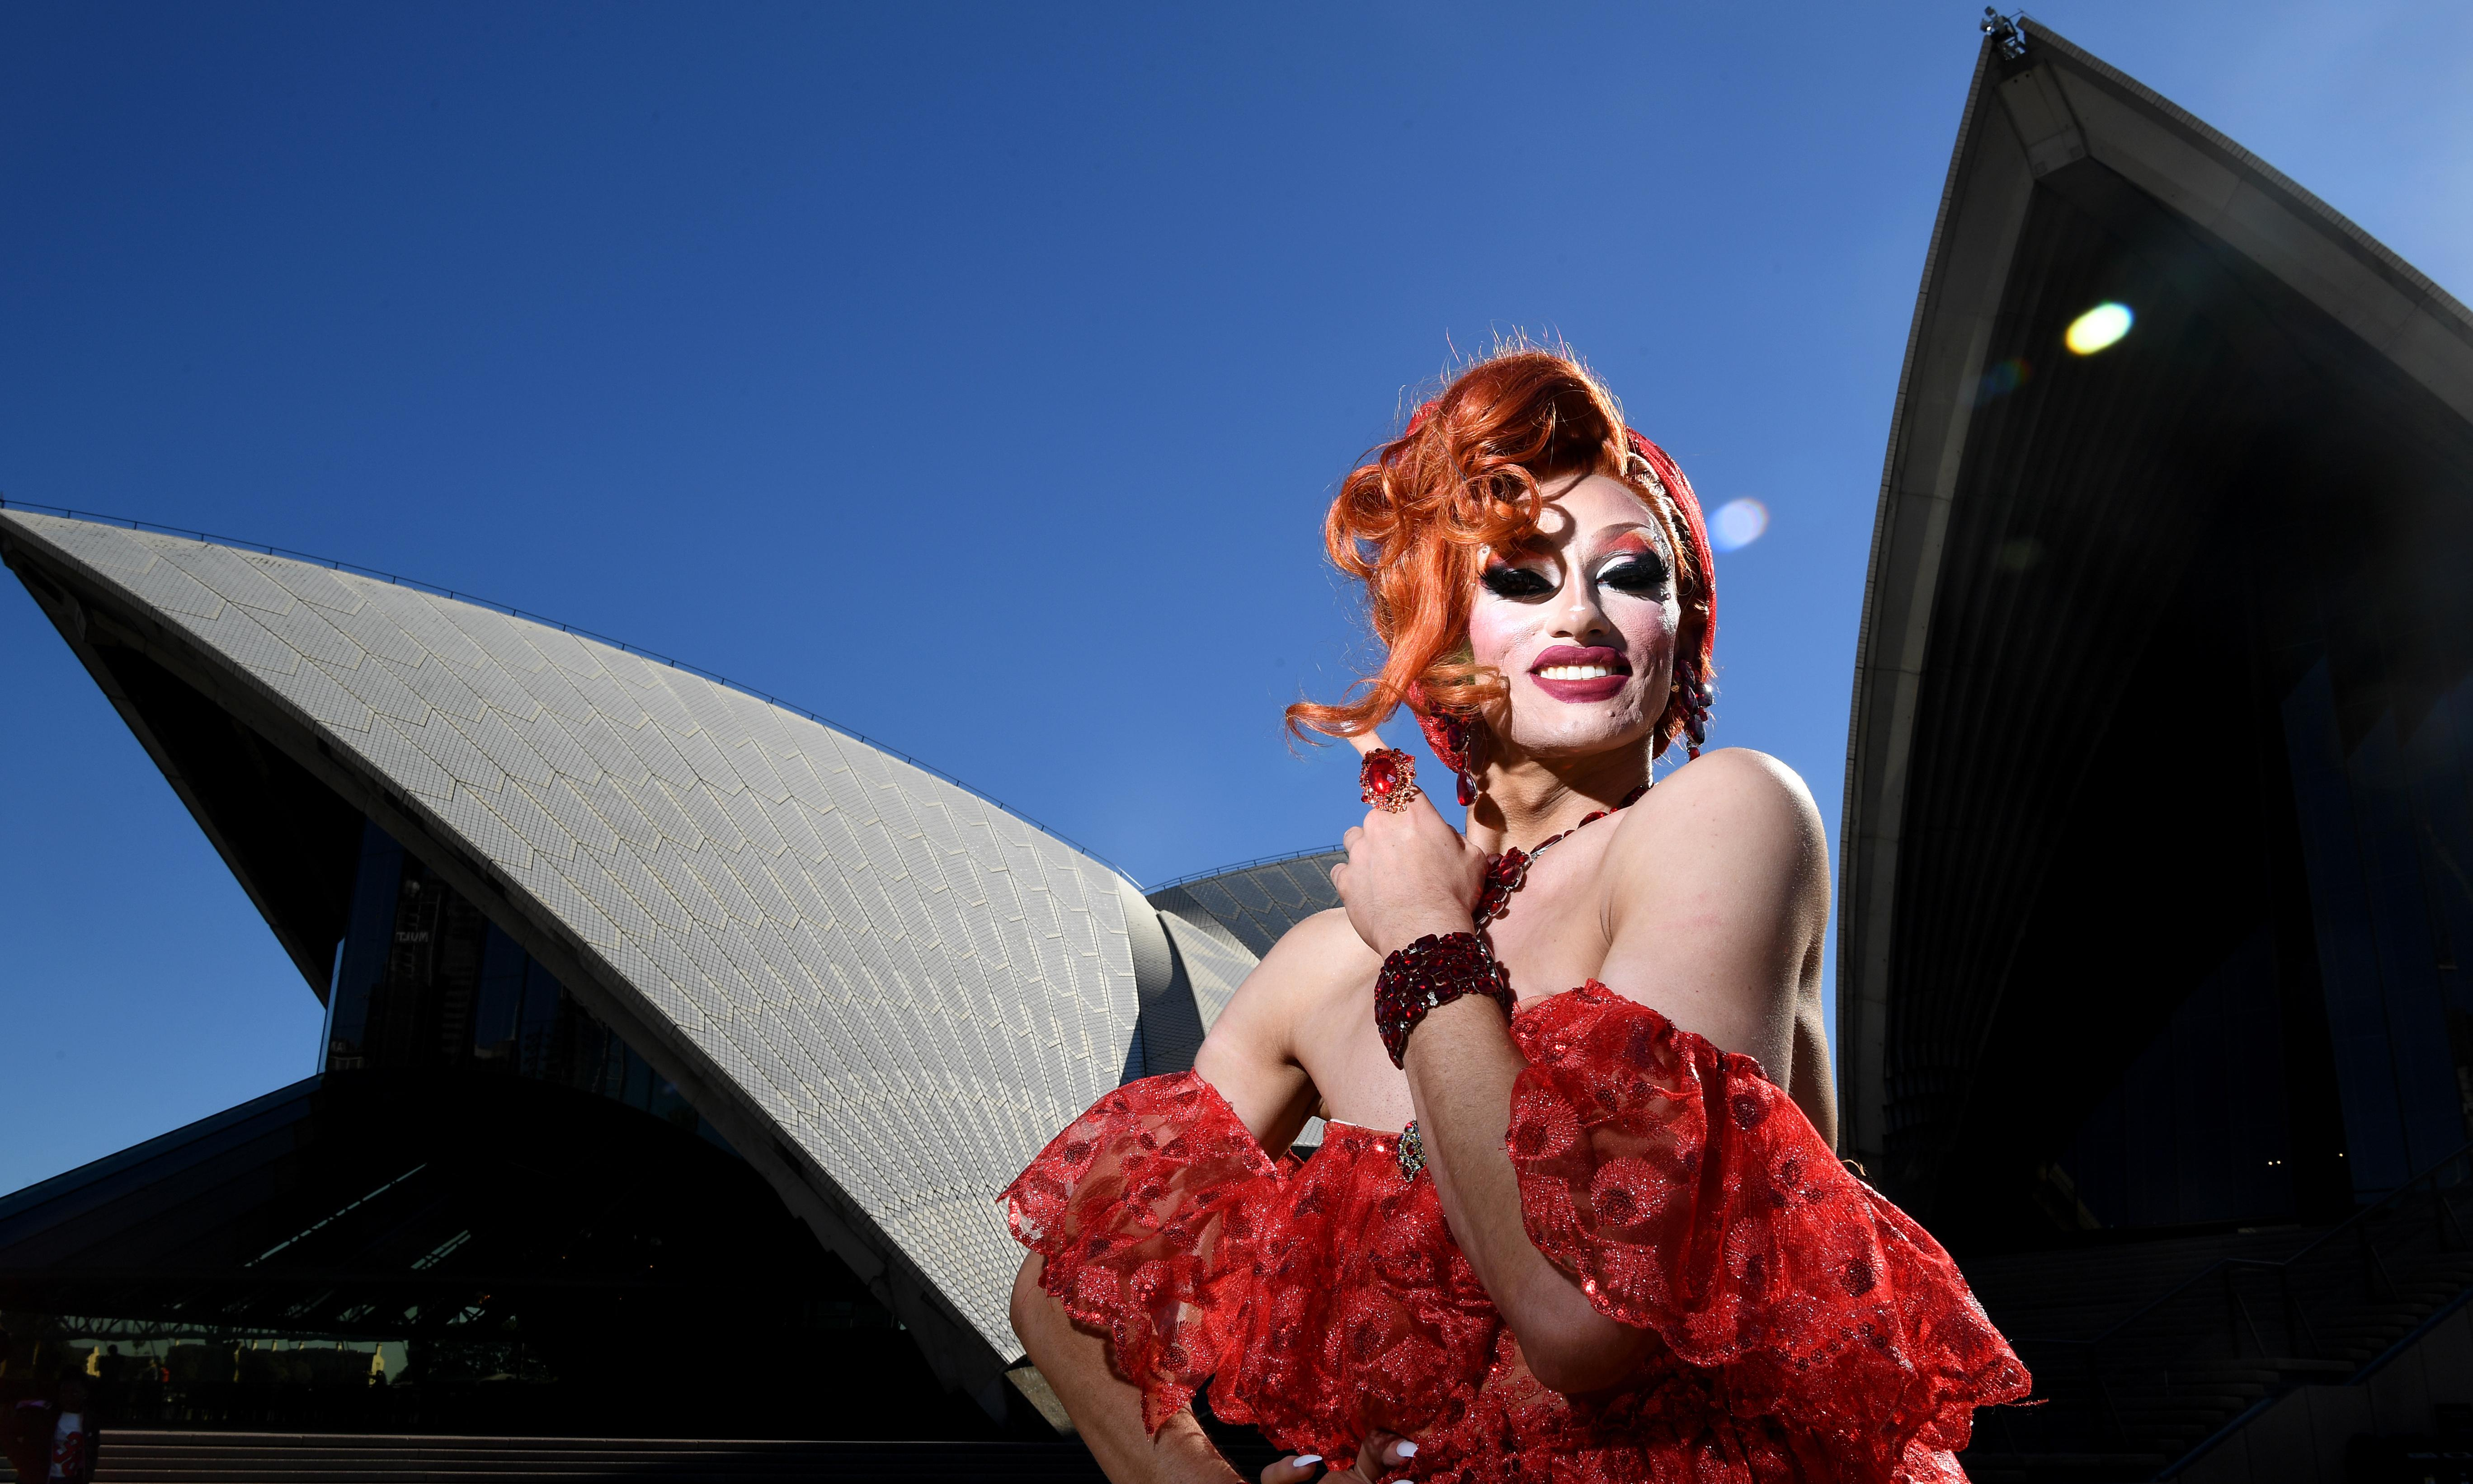 'Years in the making': the story behind Sydney's successful WorldPride 2023 bid